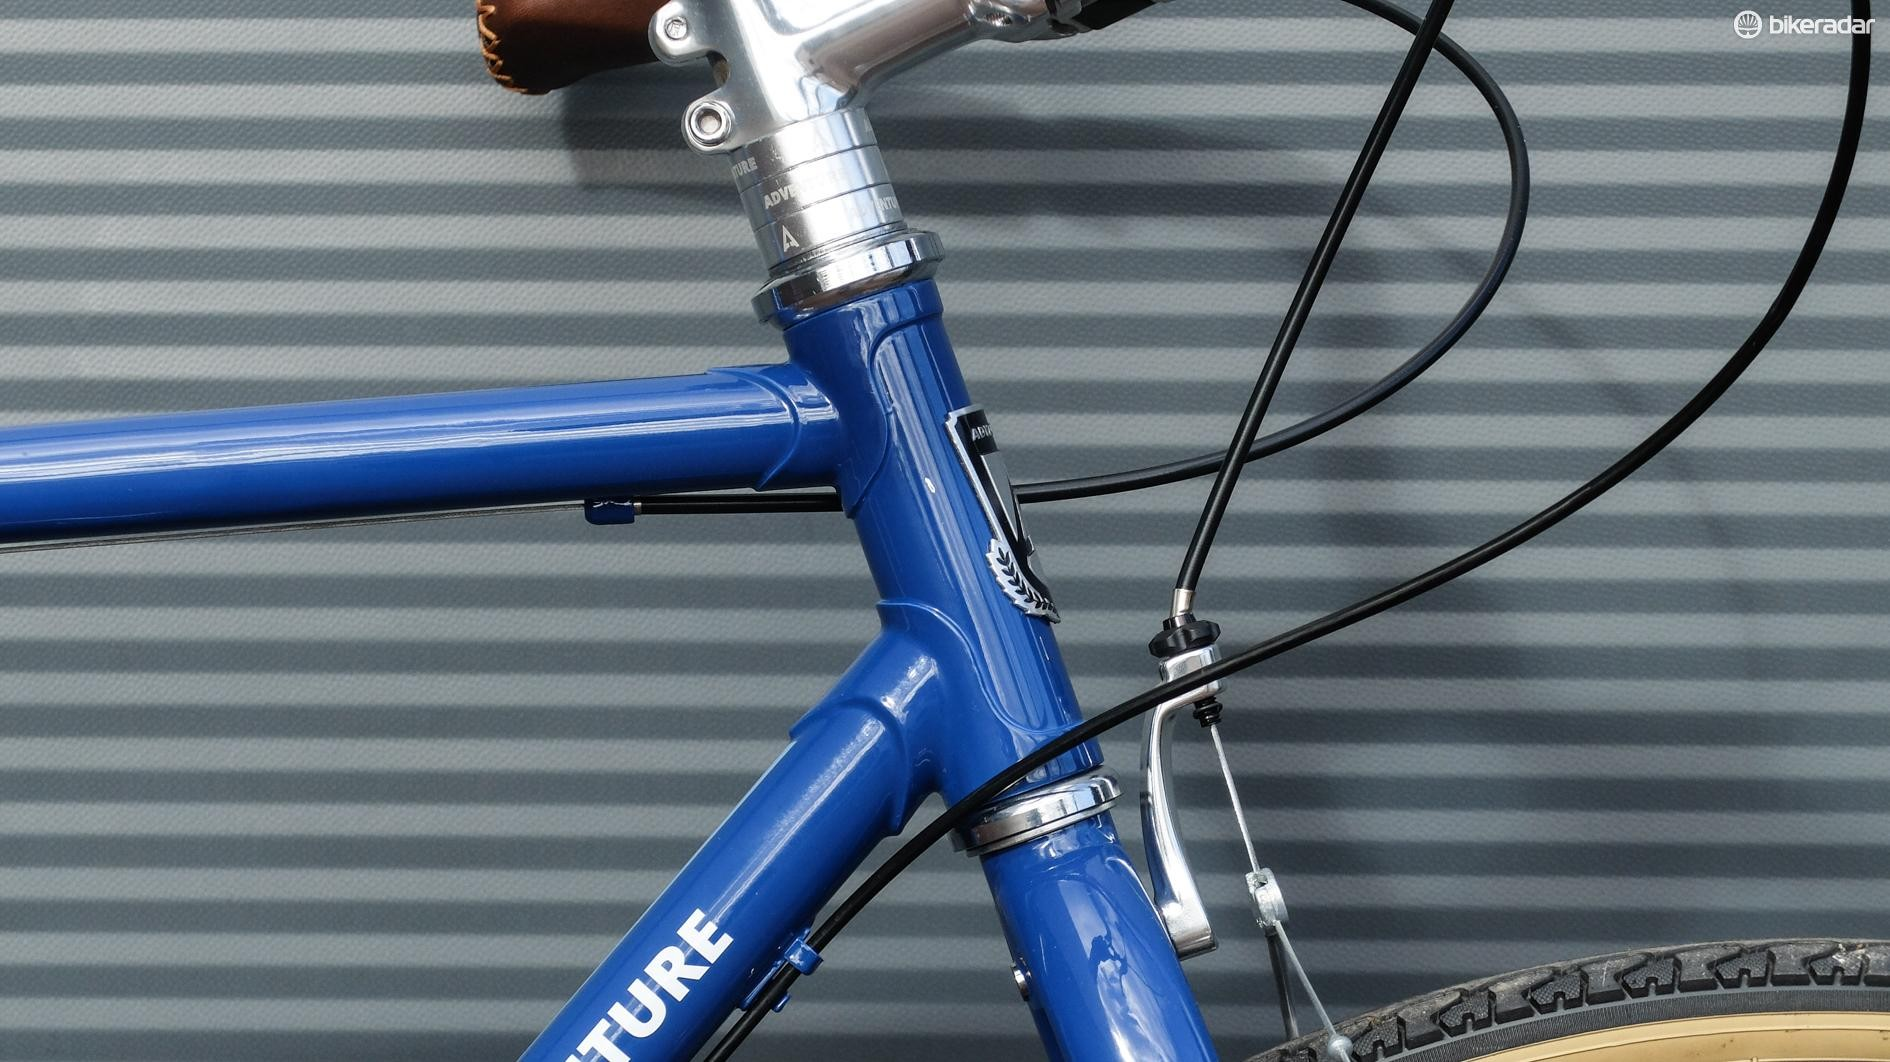 The lugged head tube is rather lovely